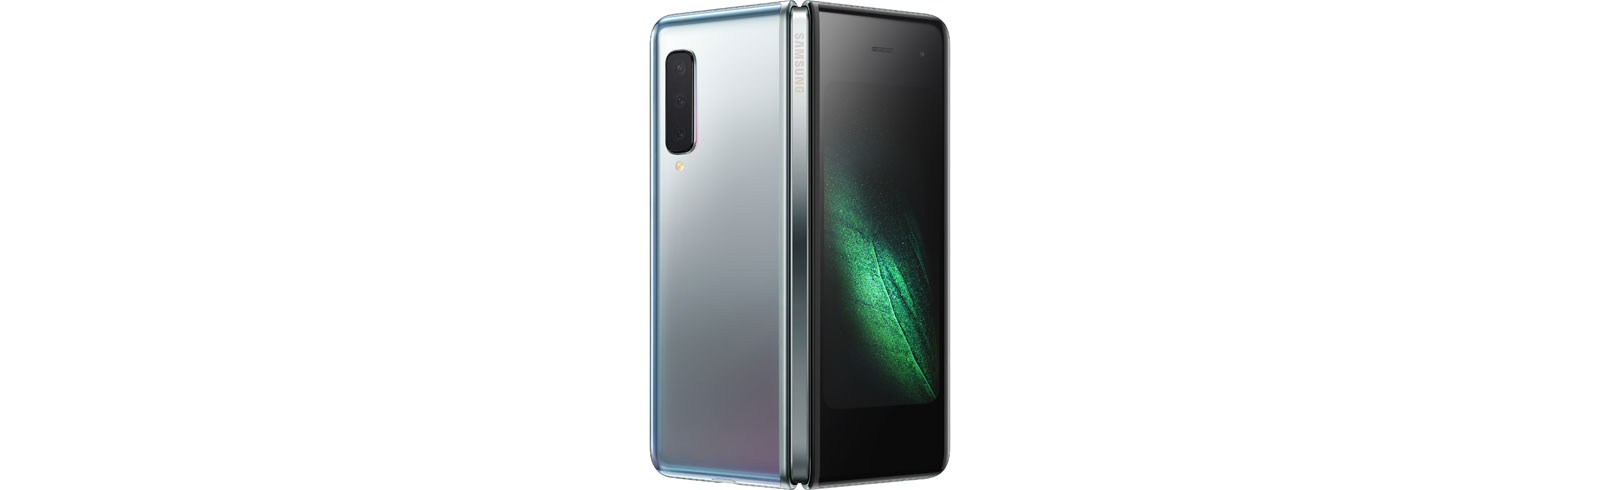 It's official: Samsung Galaxy Fold will be launched in September